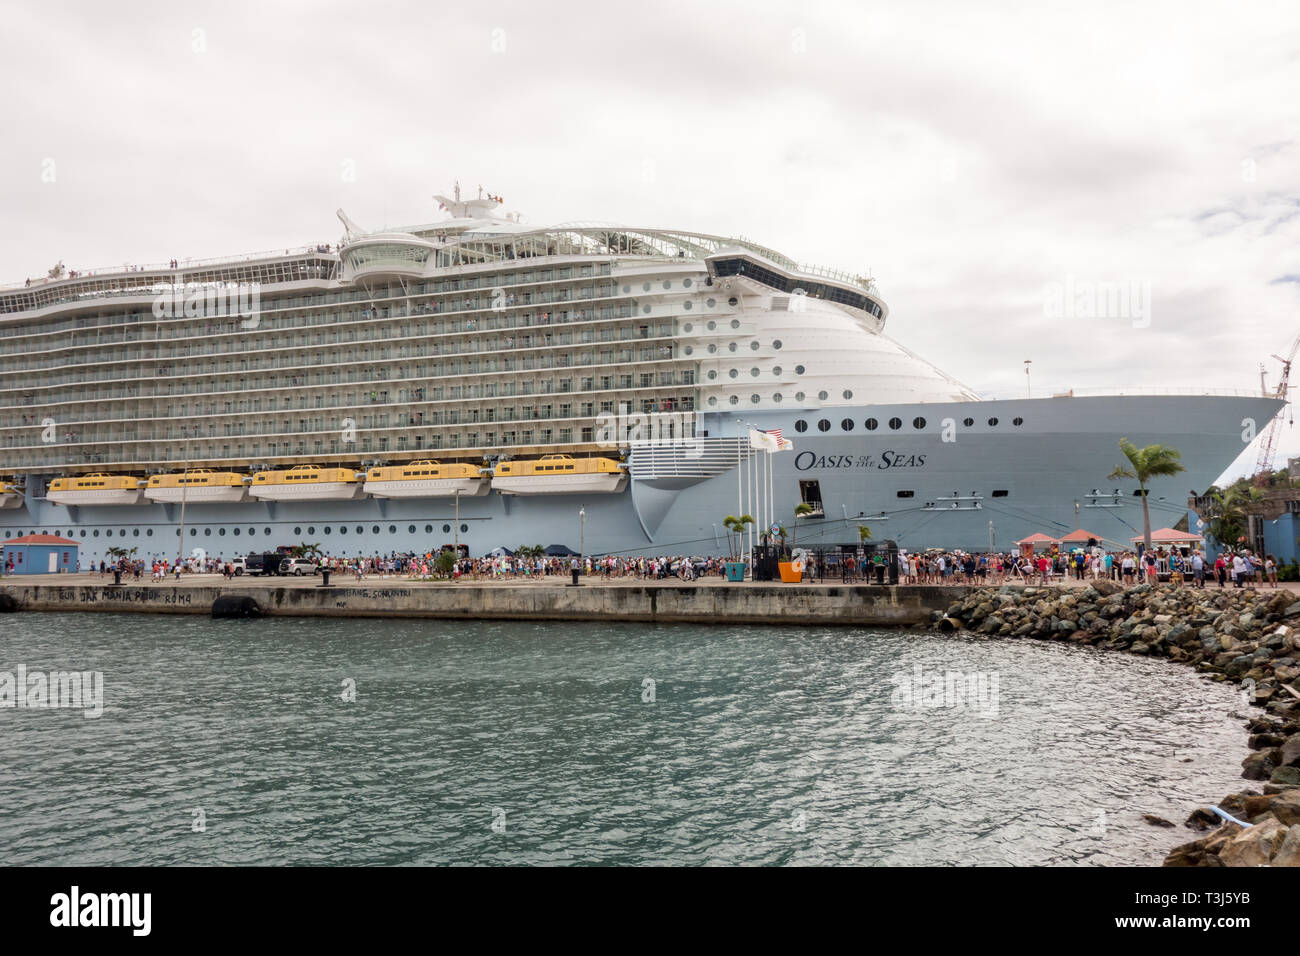 Oasis of the Seas owned by Royal Caribbean International is being docked at  St Thomas' Cruise Port. - Stock Image